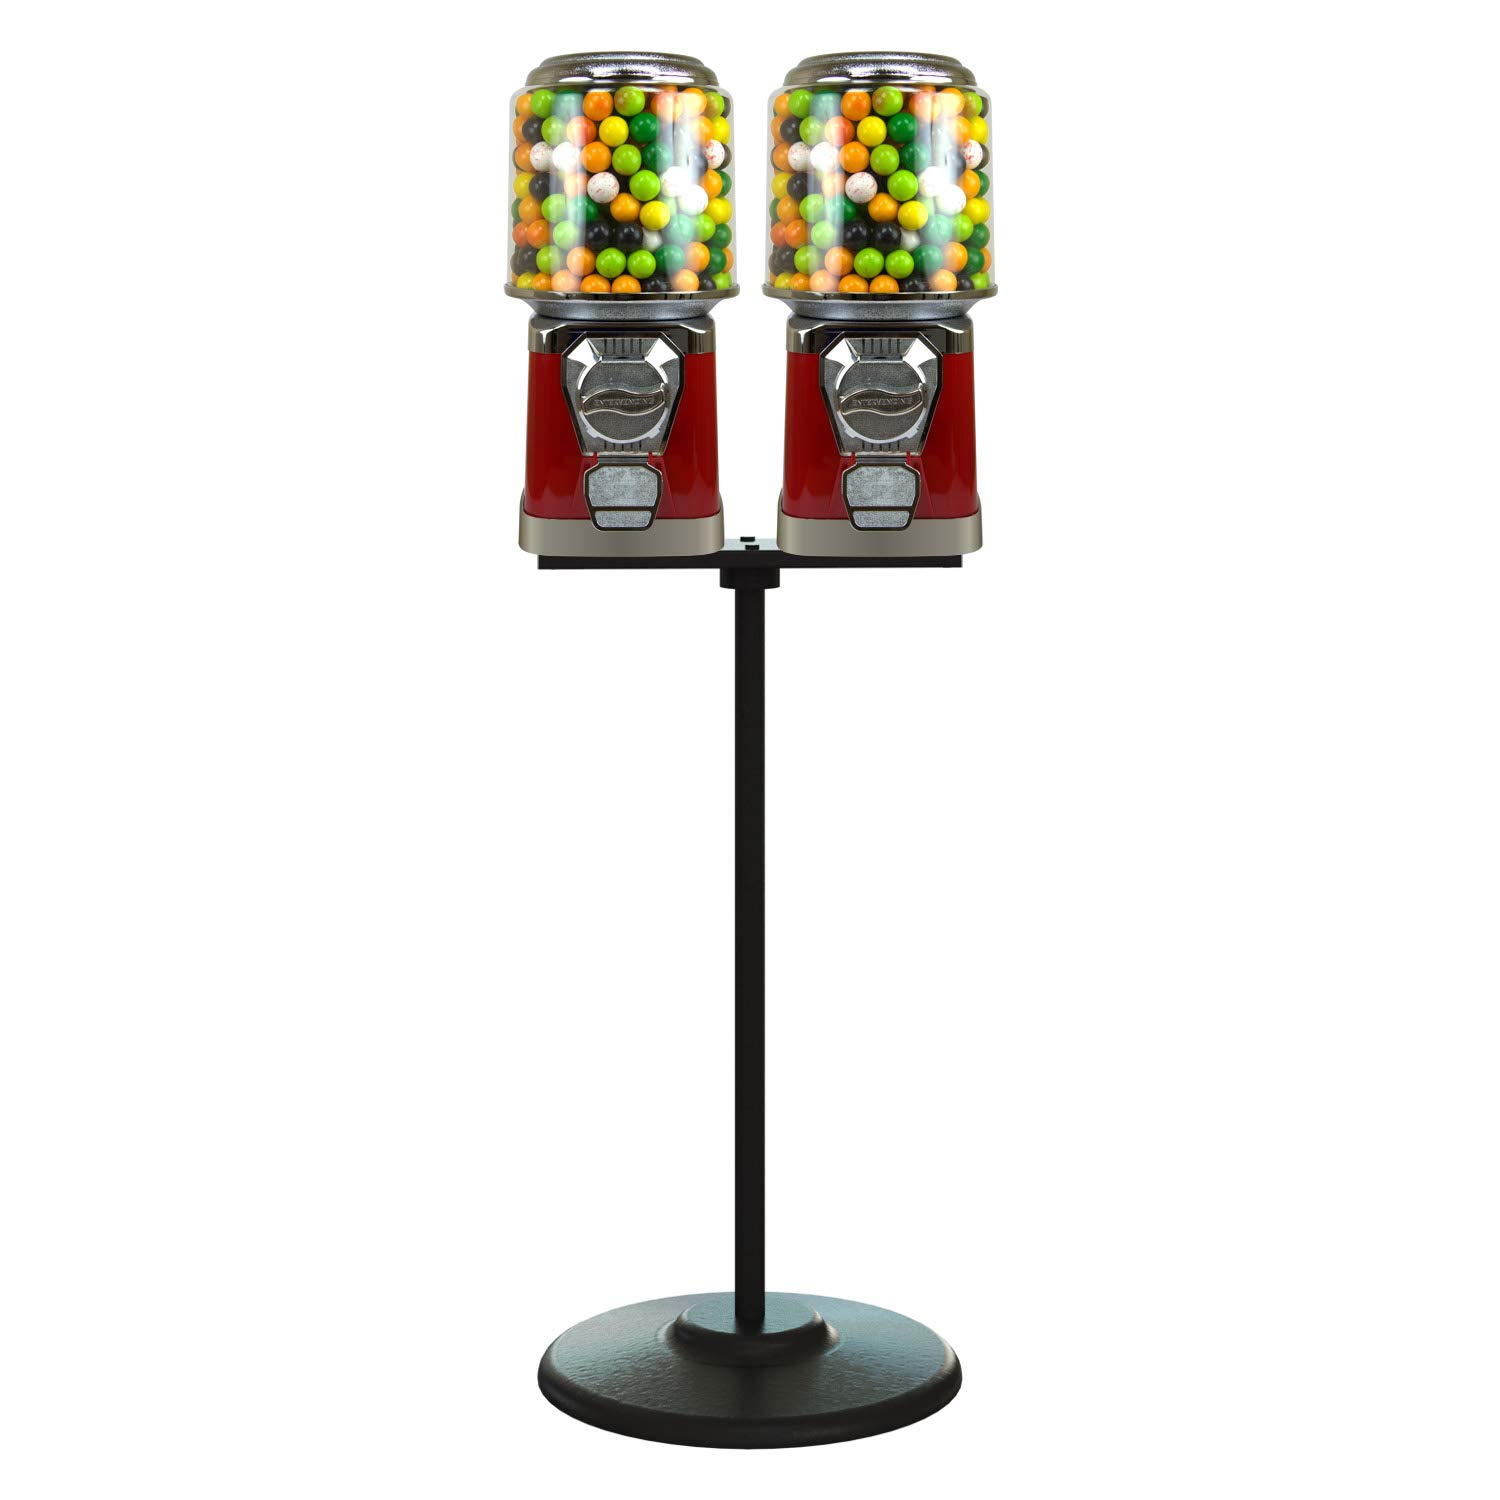 Gumball Machine Fashion with Popular shop is the lowest price challenge Stand - Machines 2 Bundled Red Vending